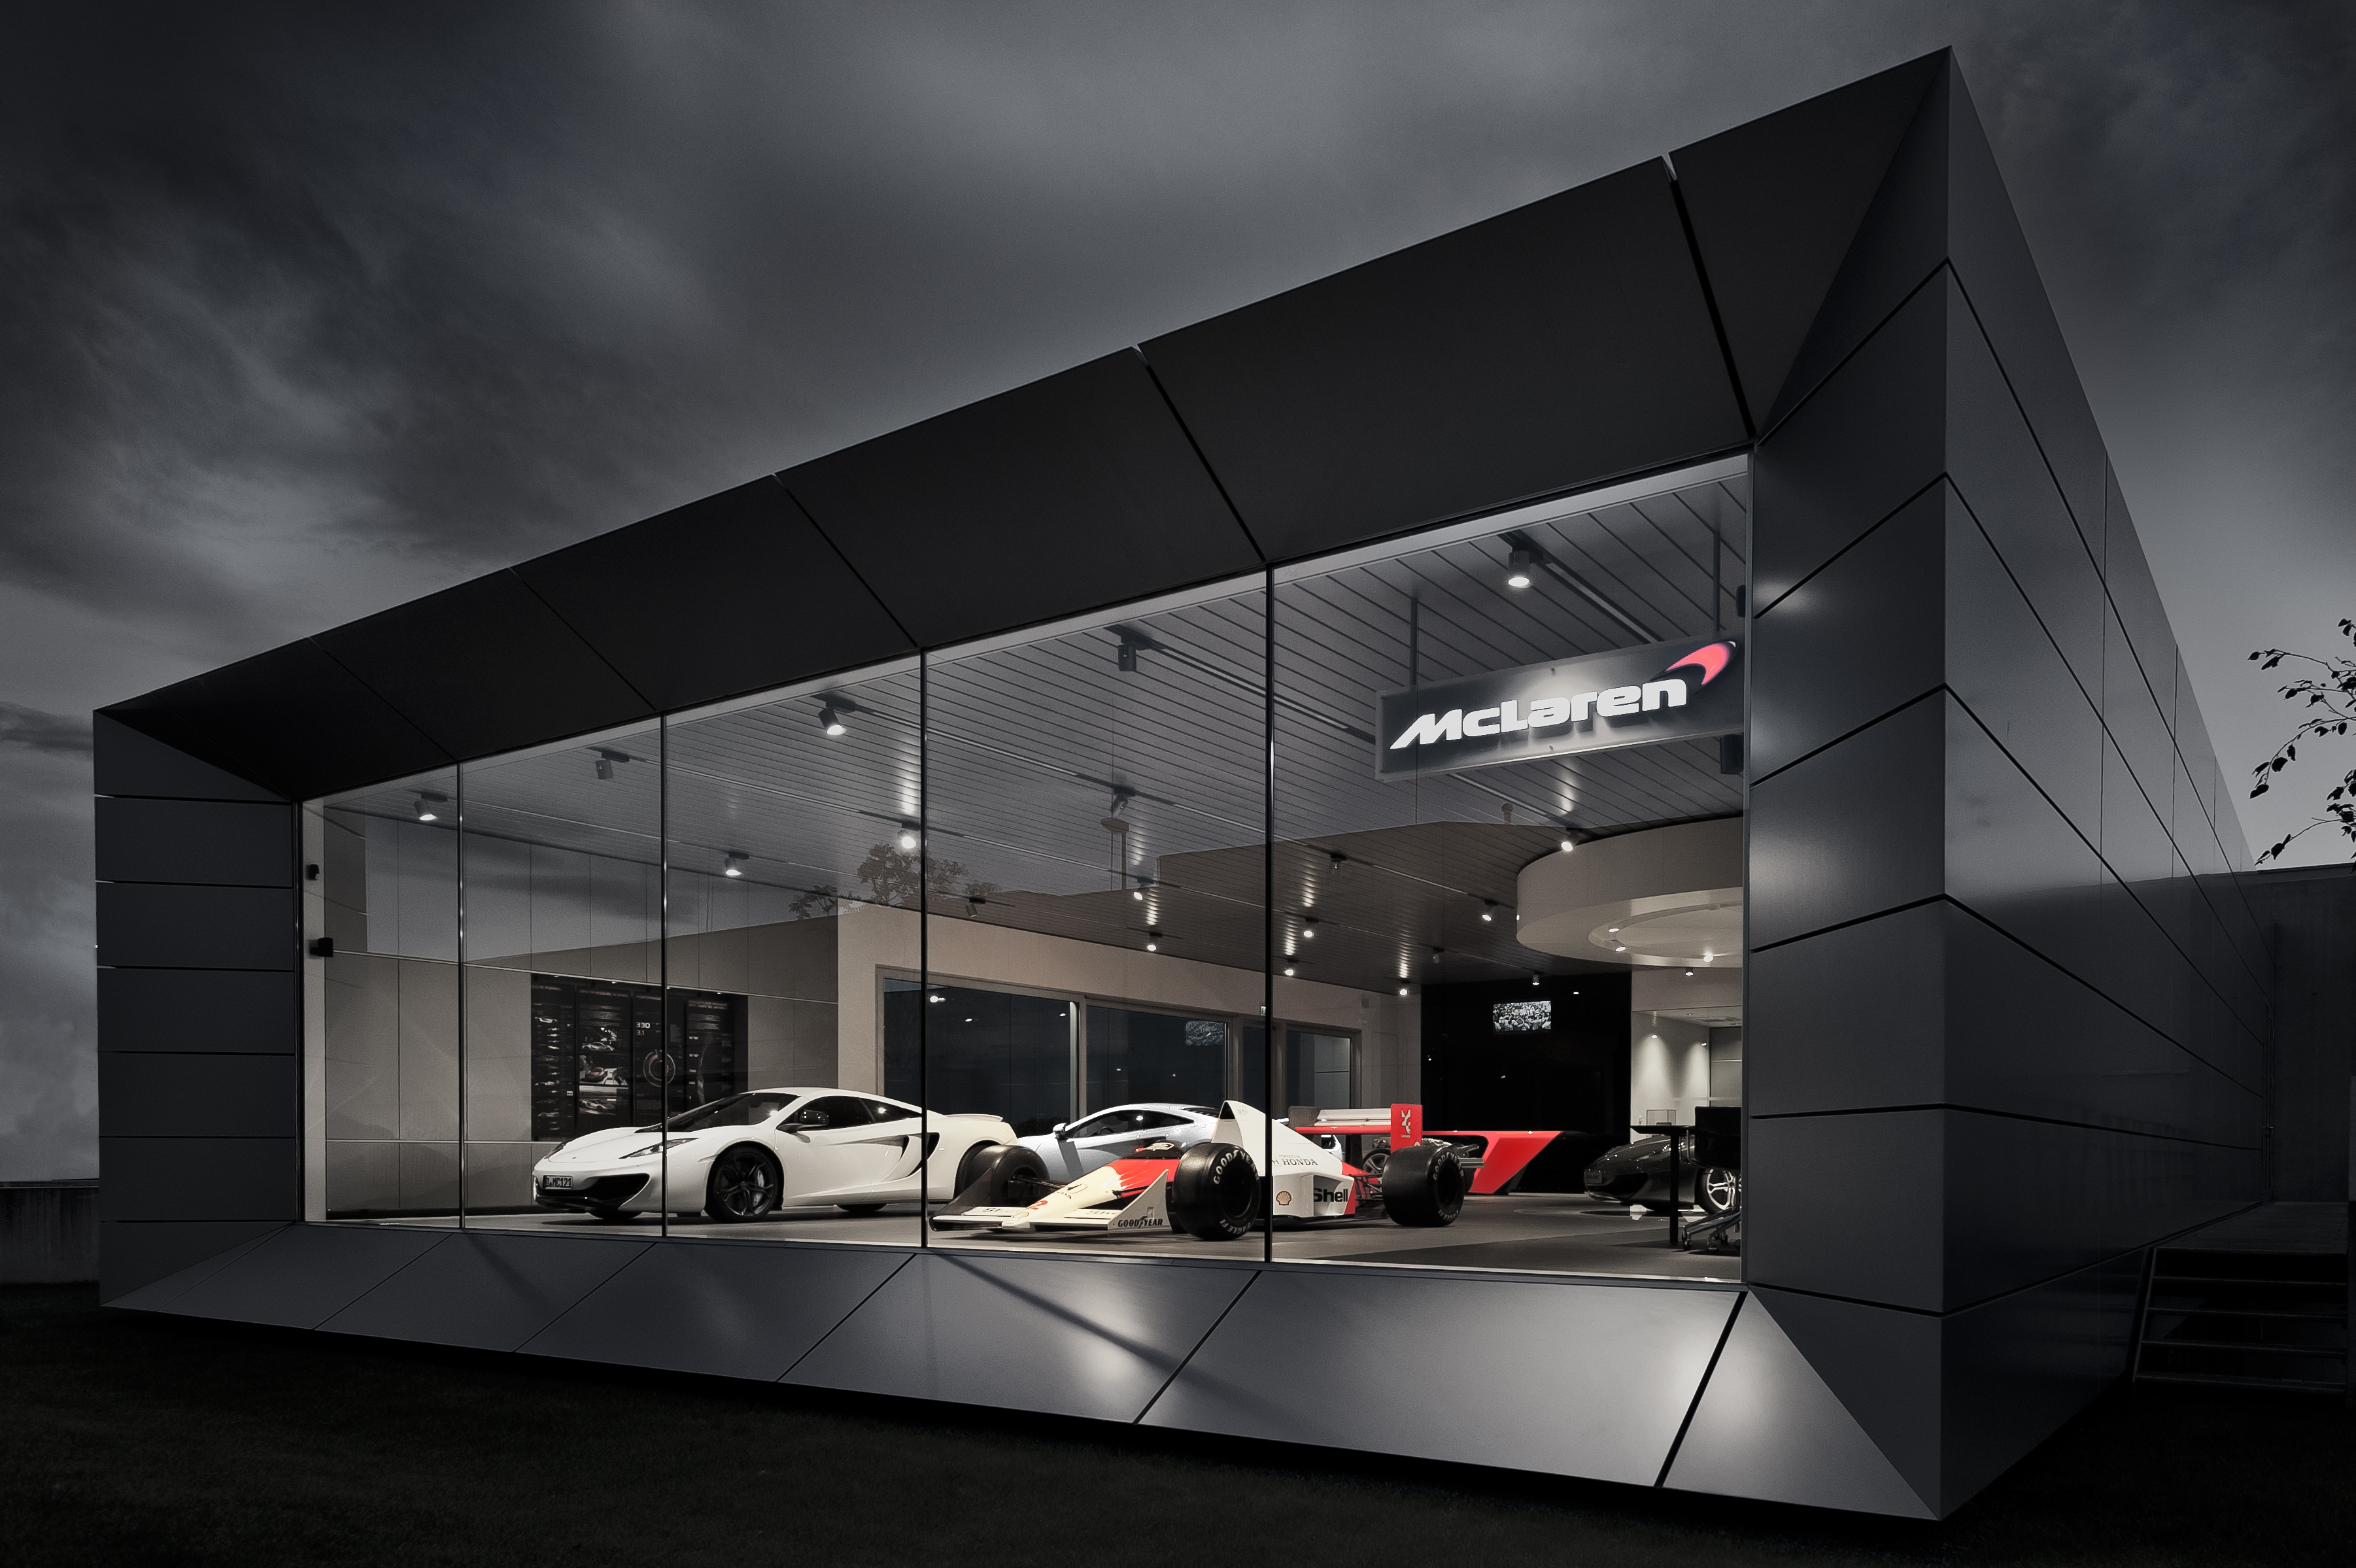 McLaren Automotive races ahead